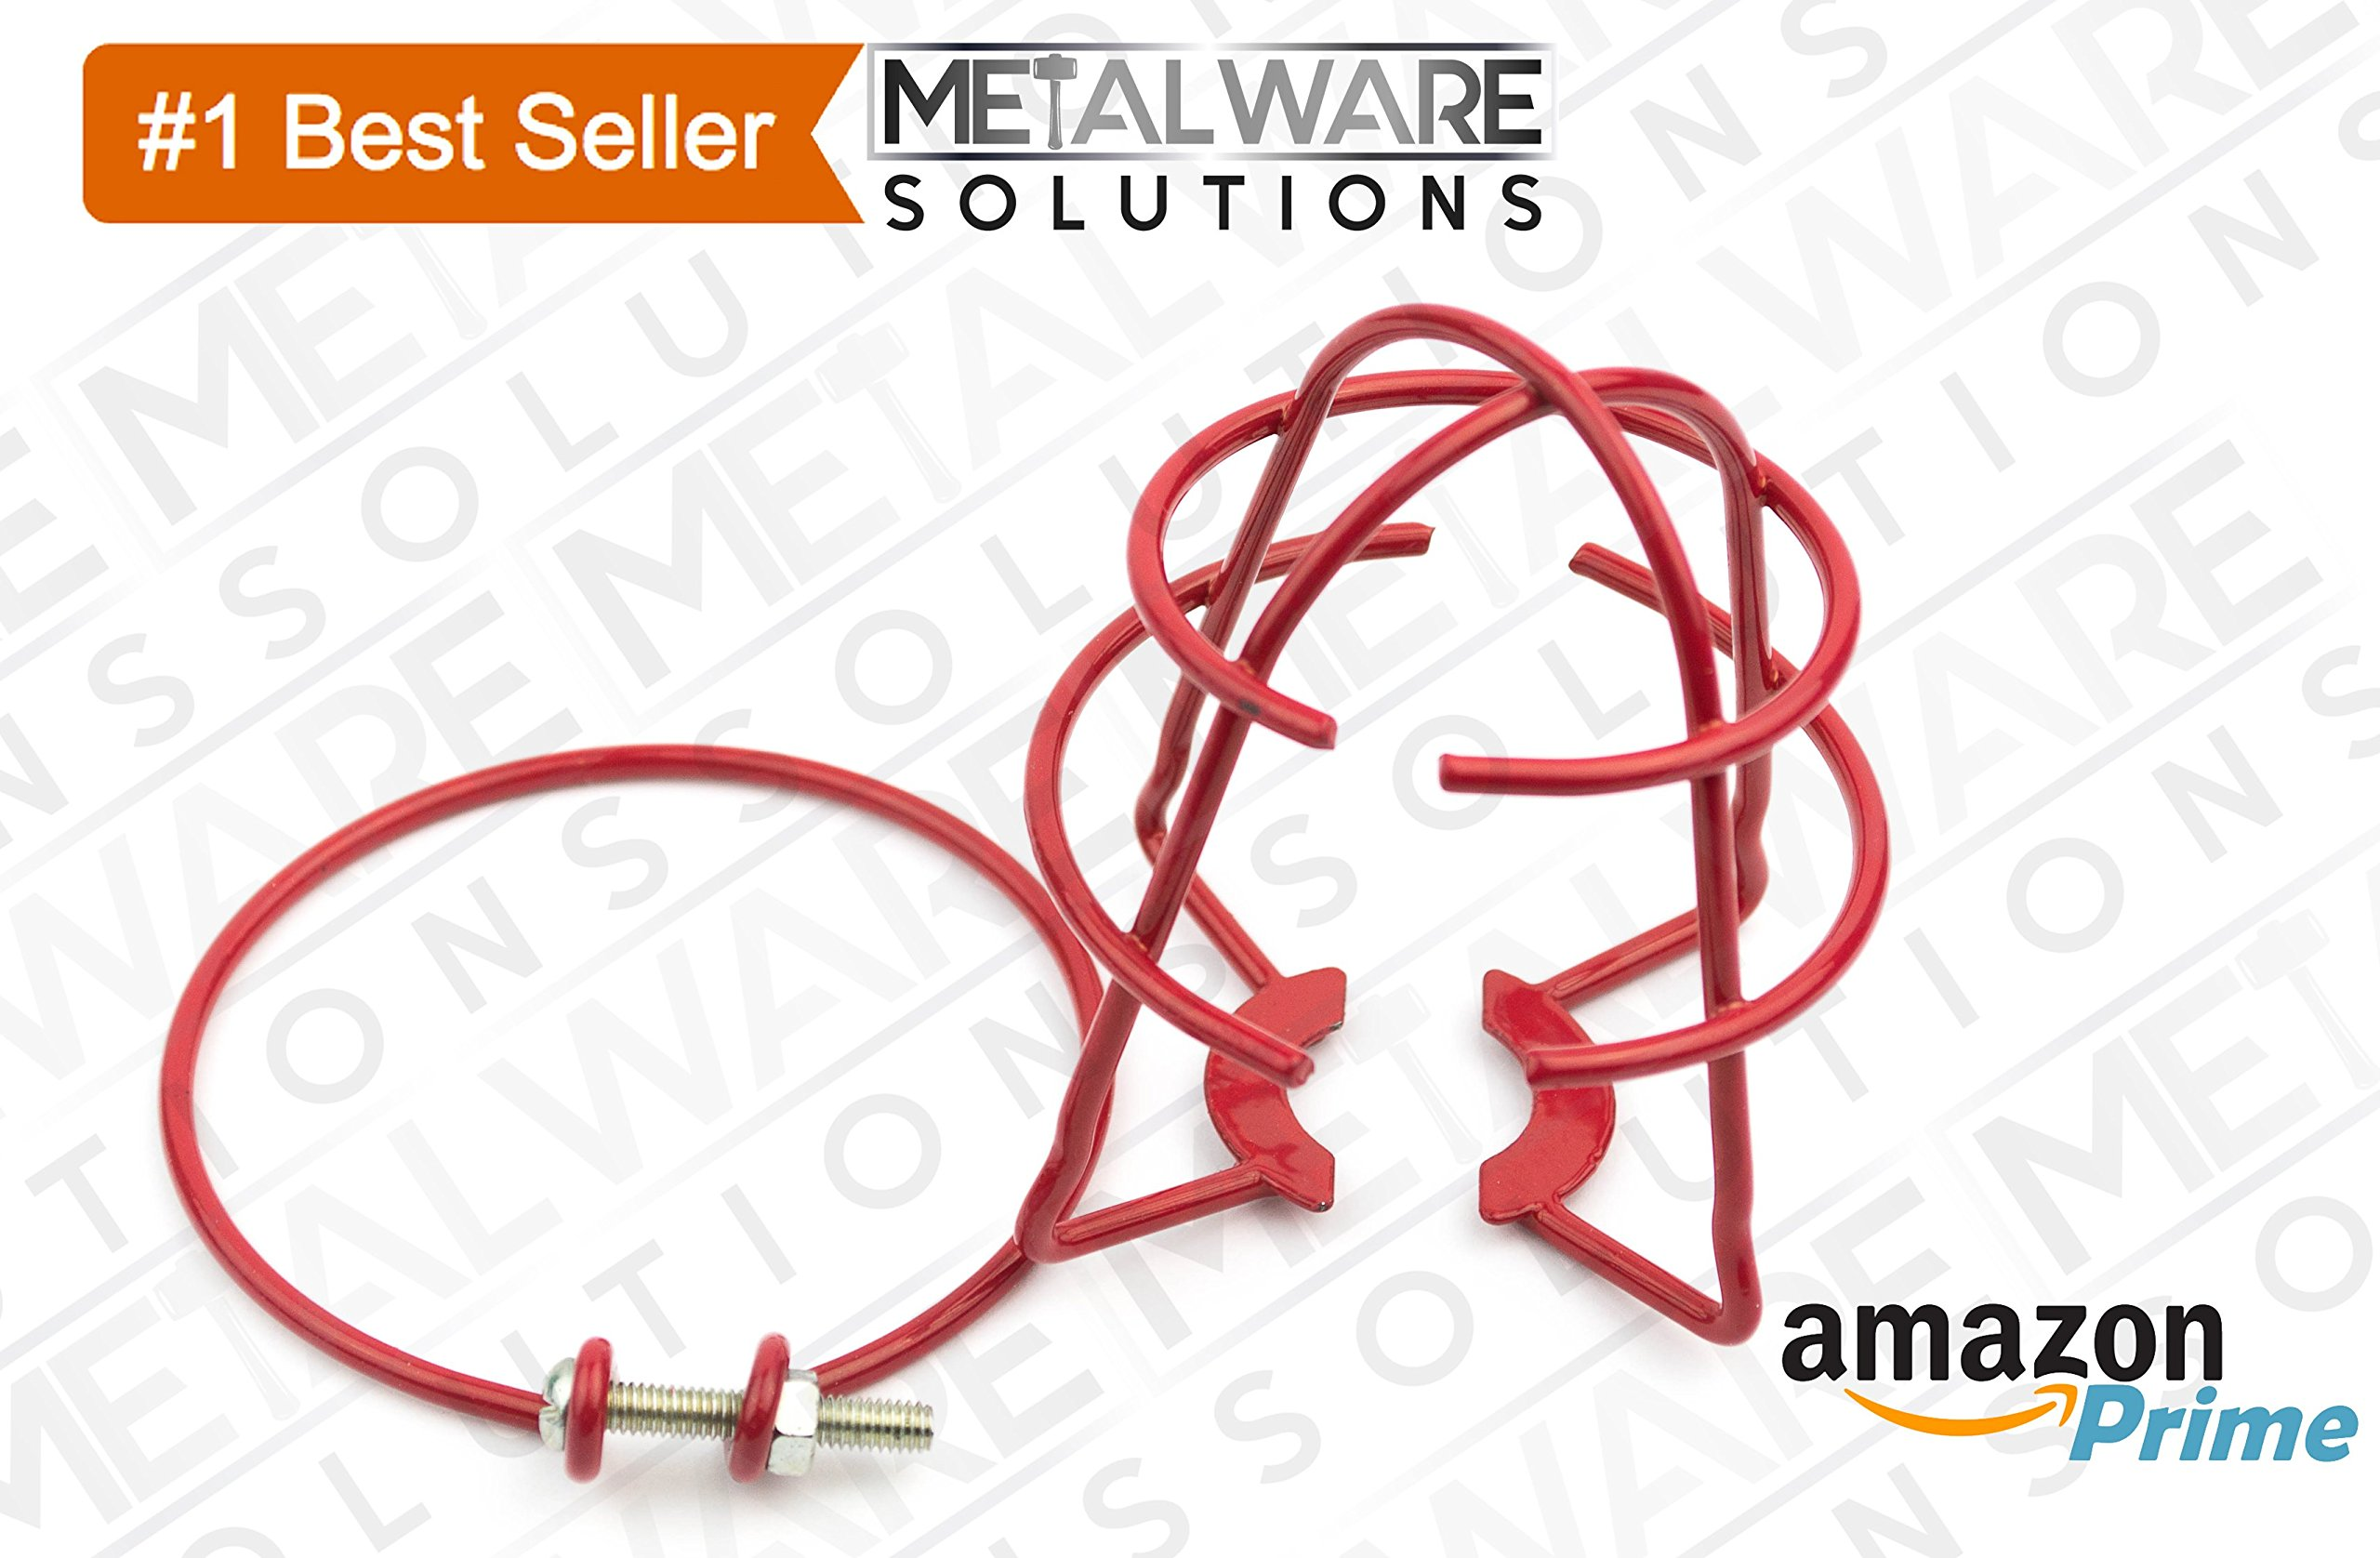 5 Pack - Metalware Solutions Red Fire Sprinkler Head Guard with Easy Screw Cover for 1/2'' IPS Head by Metalware Solutions (Image #2)